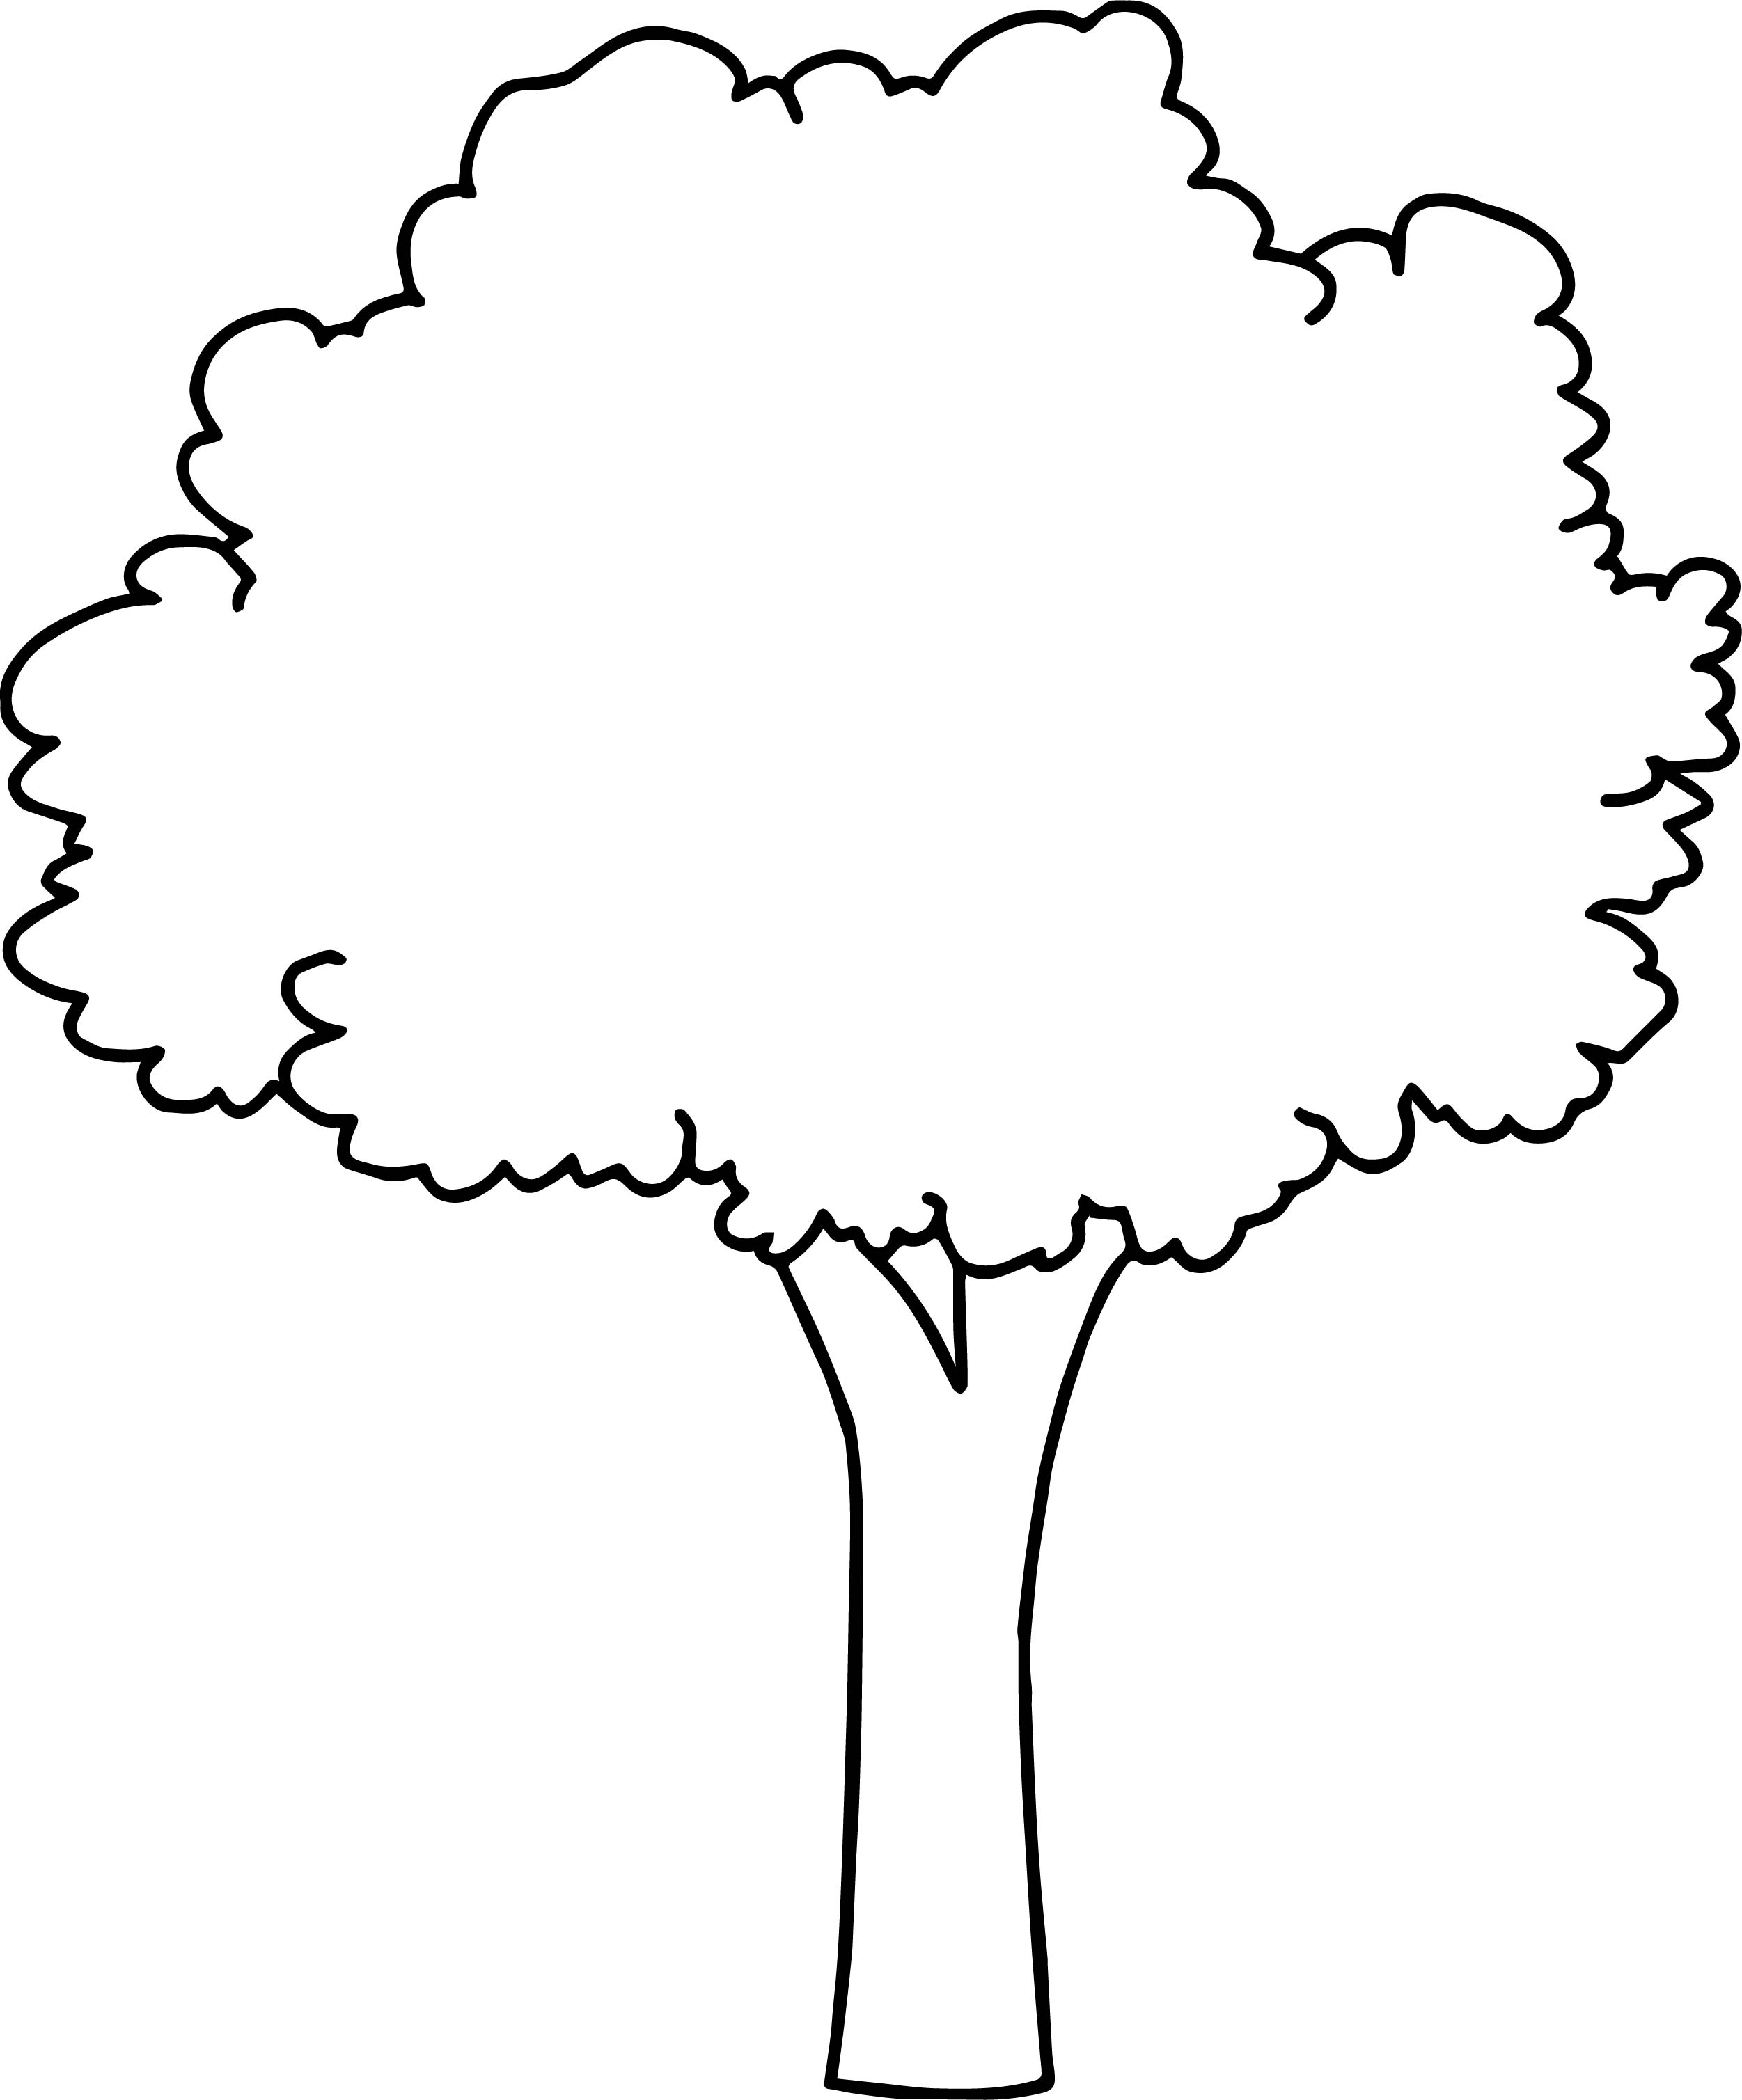 apple tree pictures to color apple tree coloring pages color tree apple to pictures